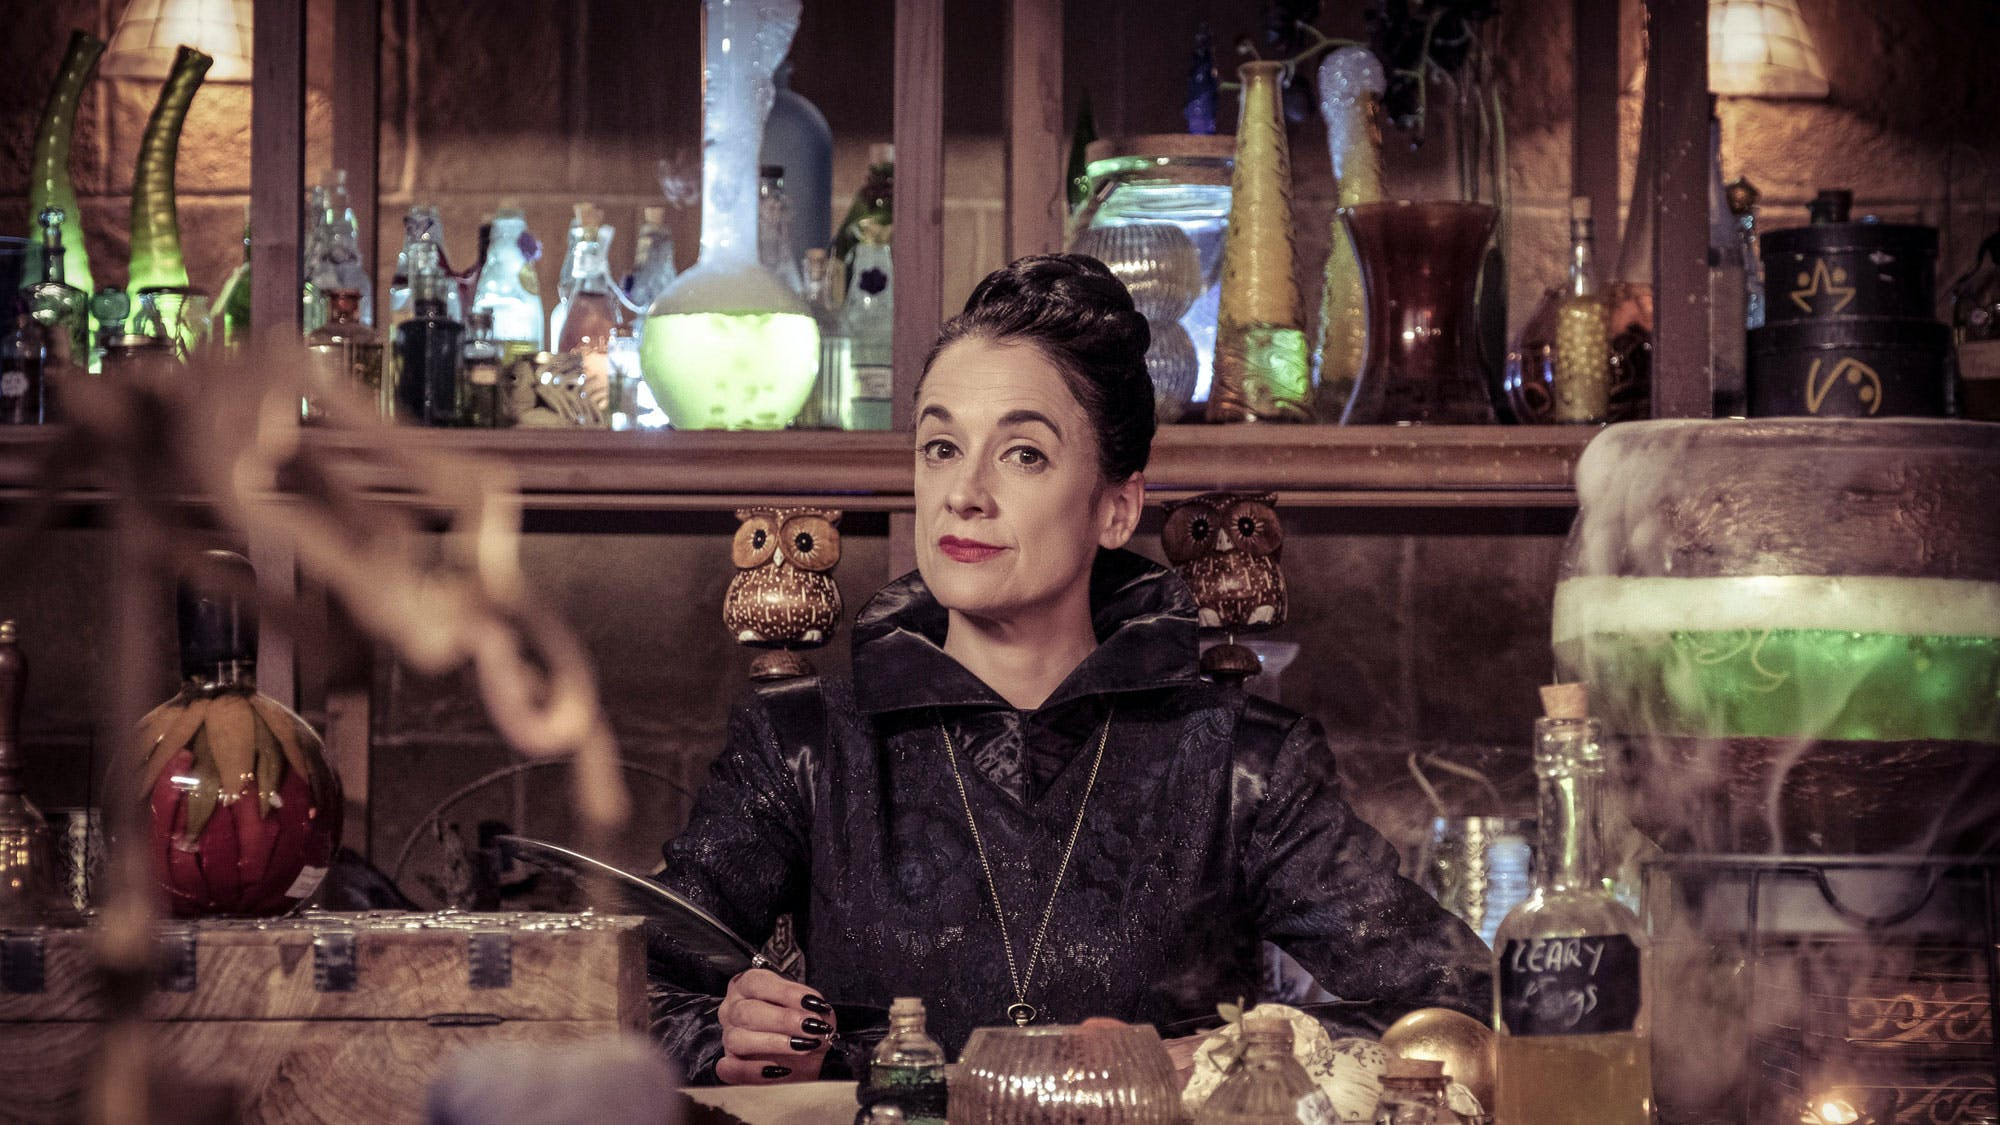 Miss Hardbroom from The Worst Witch